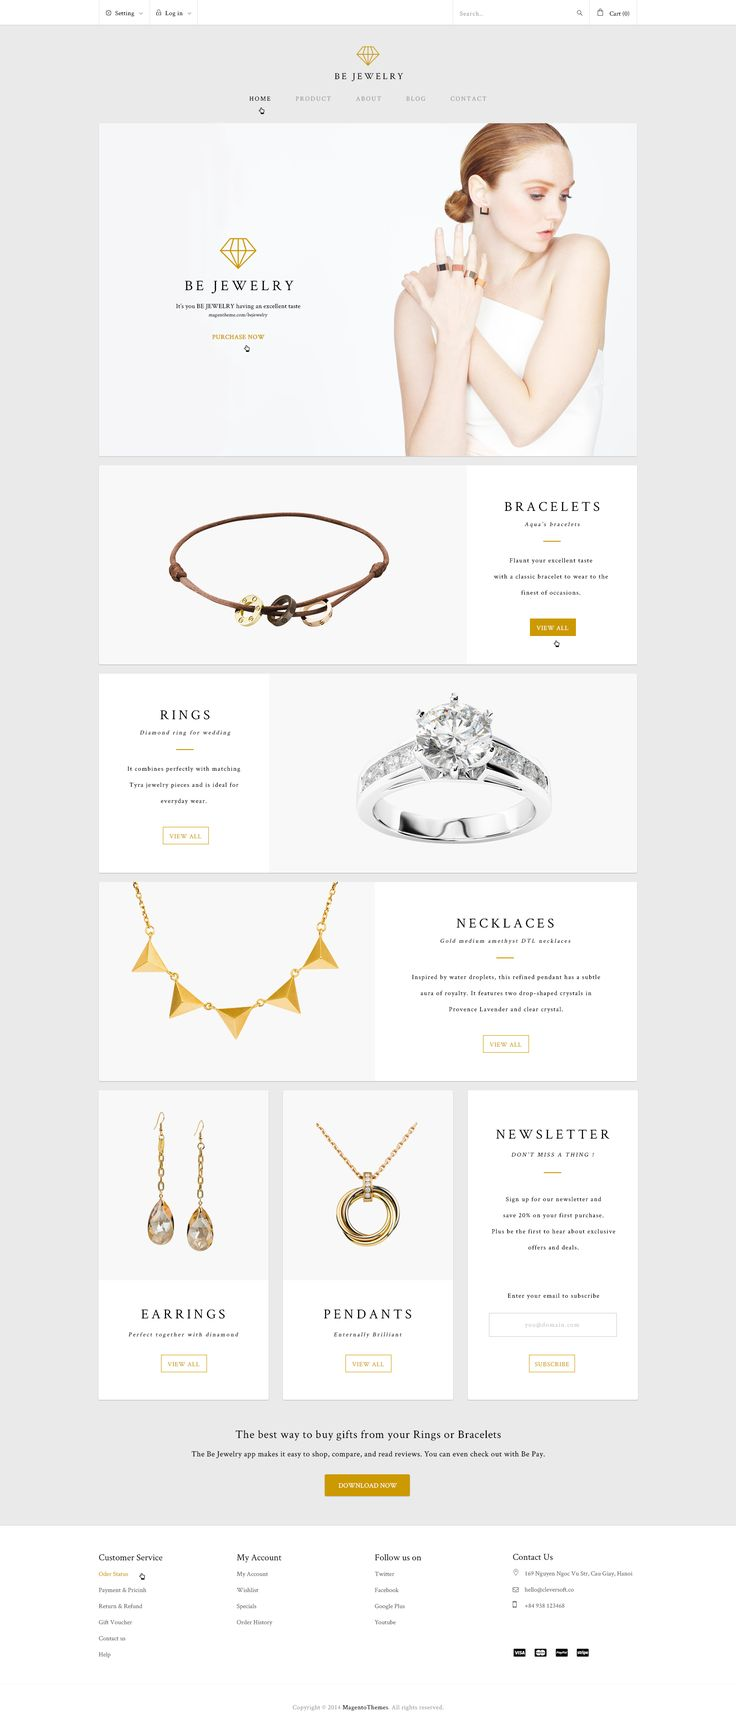 Dribbble - bejewelry_home.jpg by C-Knightz Art